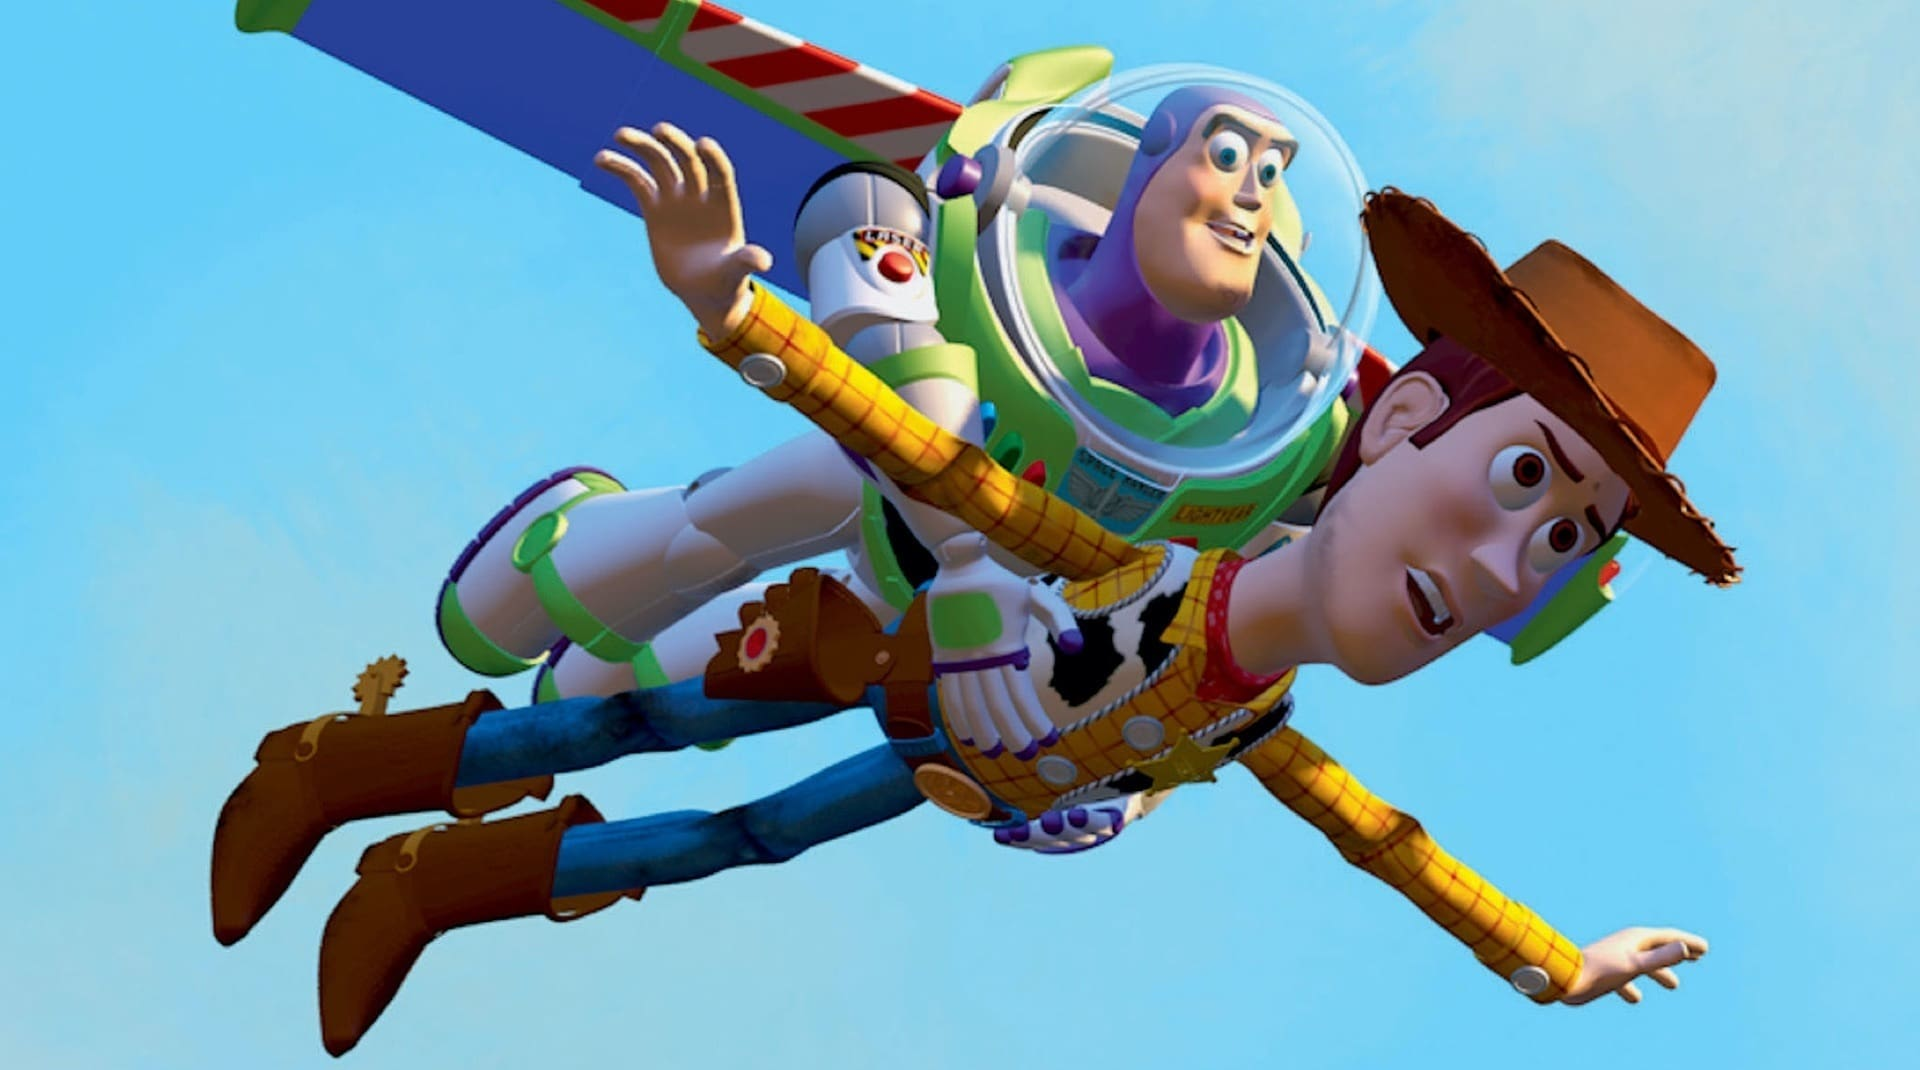 A still from Toy Story